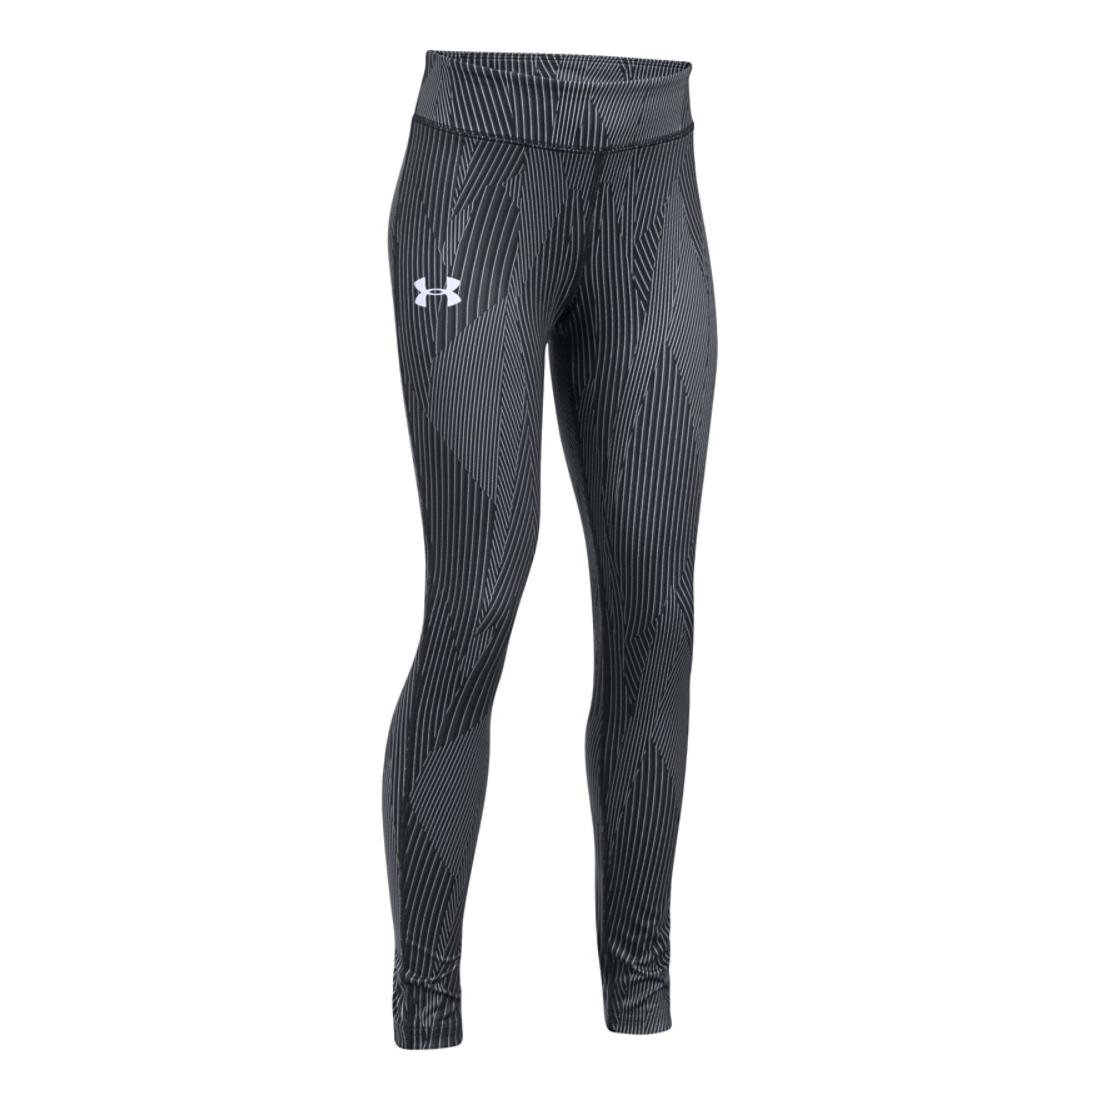 Under Armour Girls HeatGear Printed Legging, Black, SM (8 Big Kids) x One Size